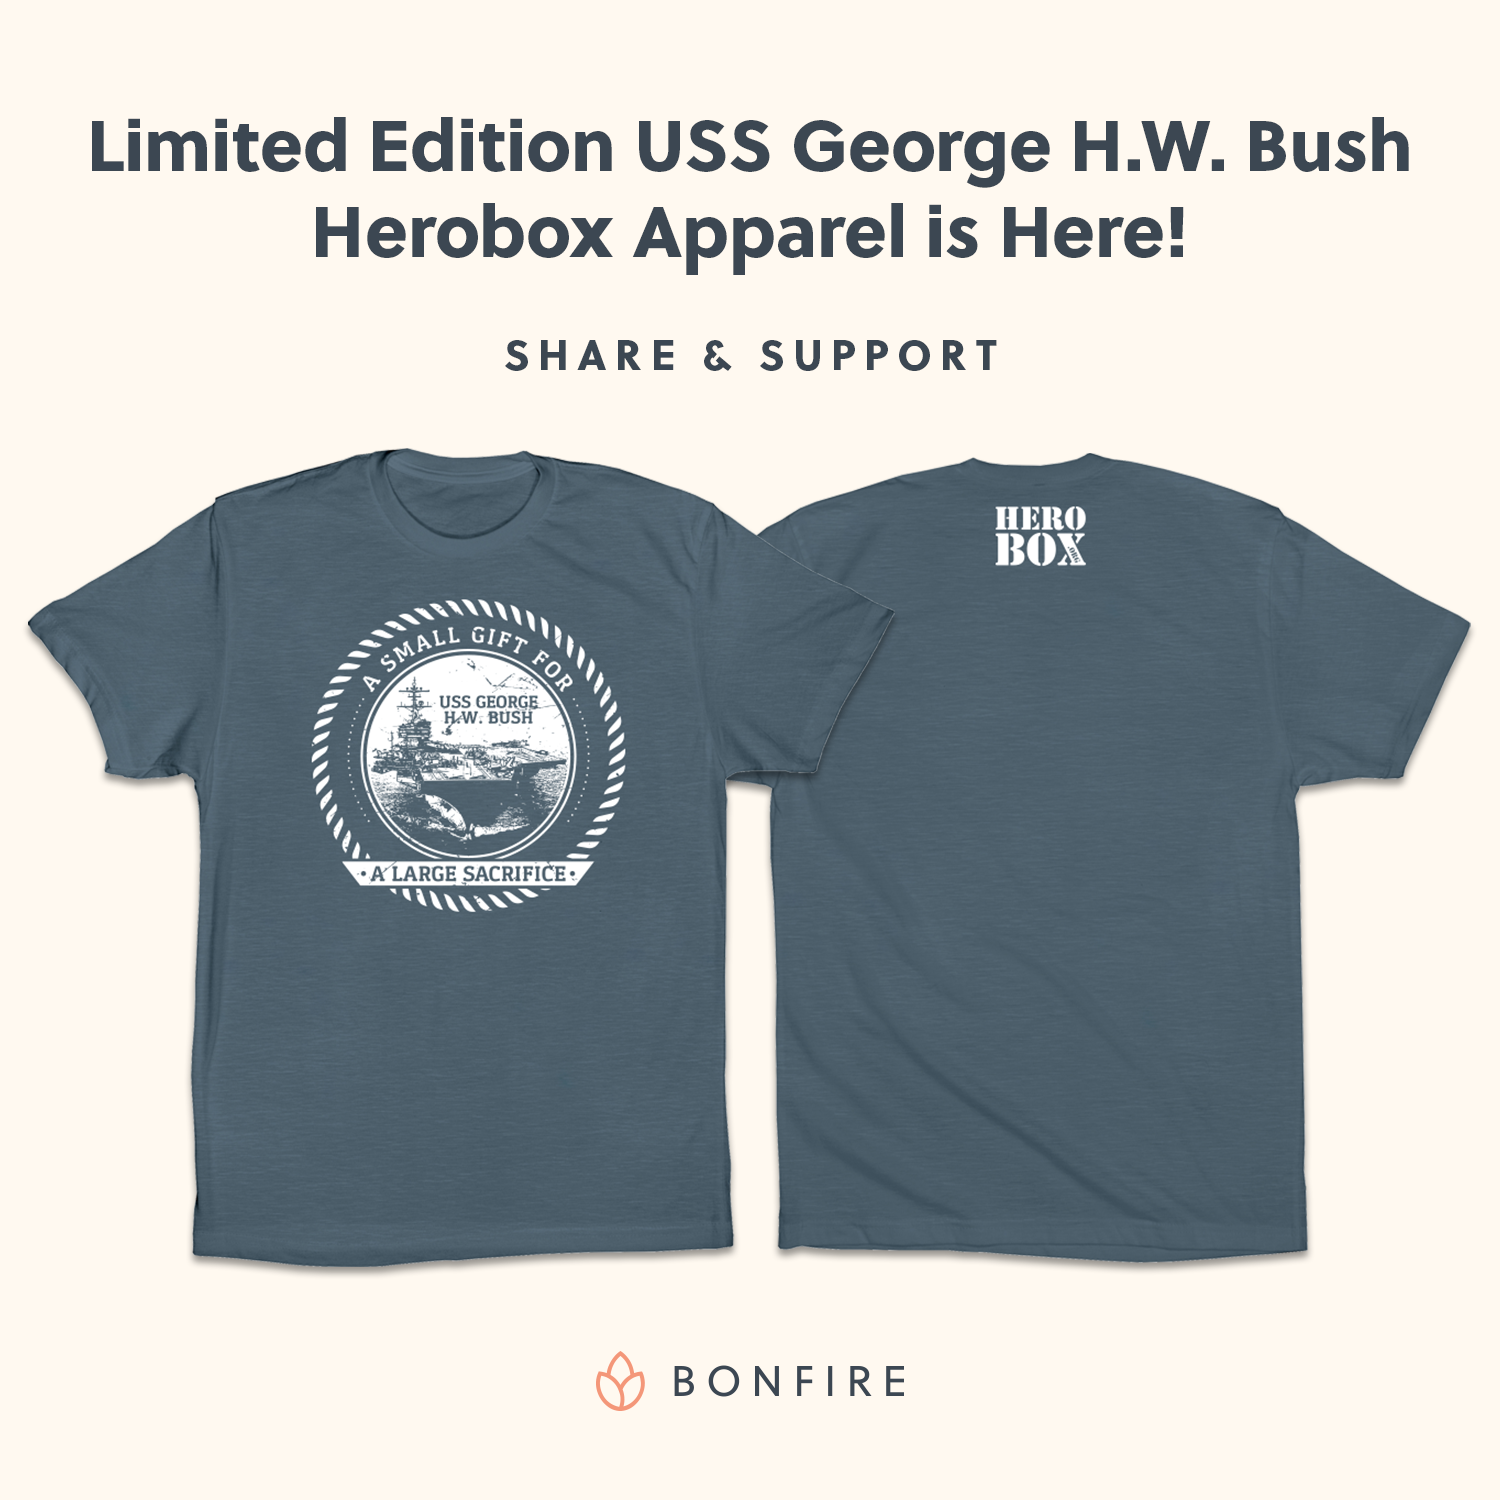 Help Support the USS George H. W. Bush Naval Fleet!